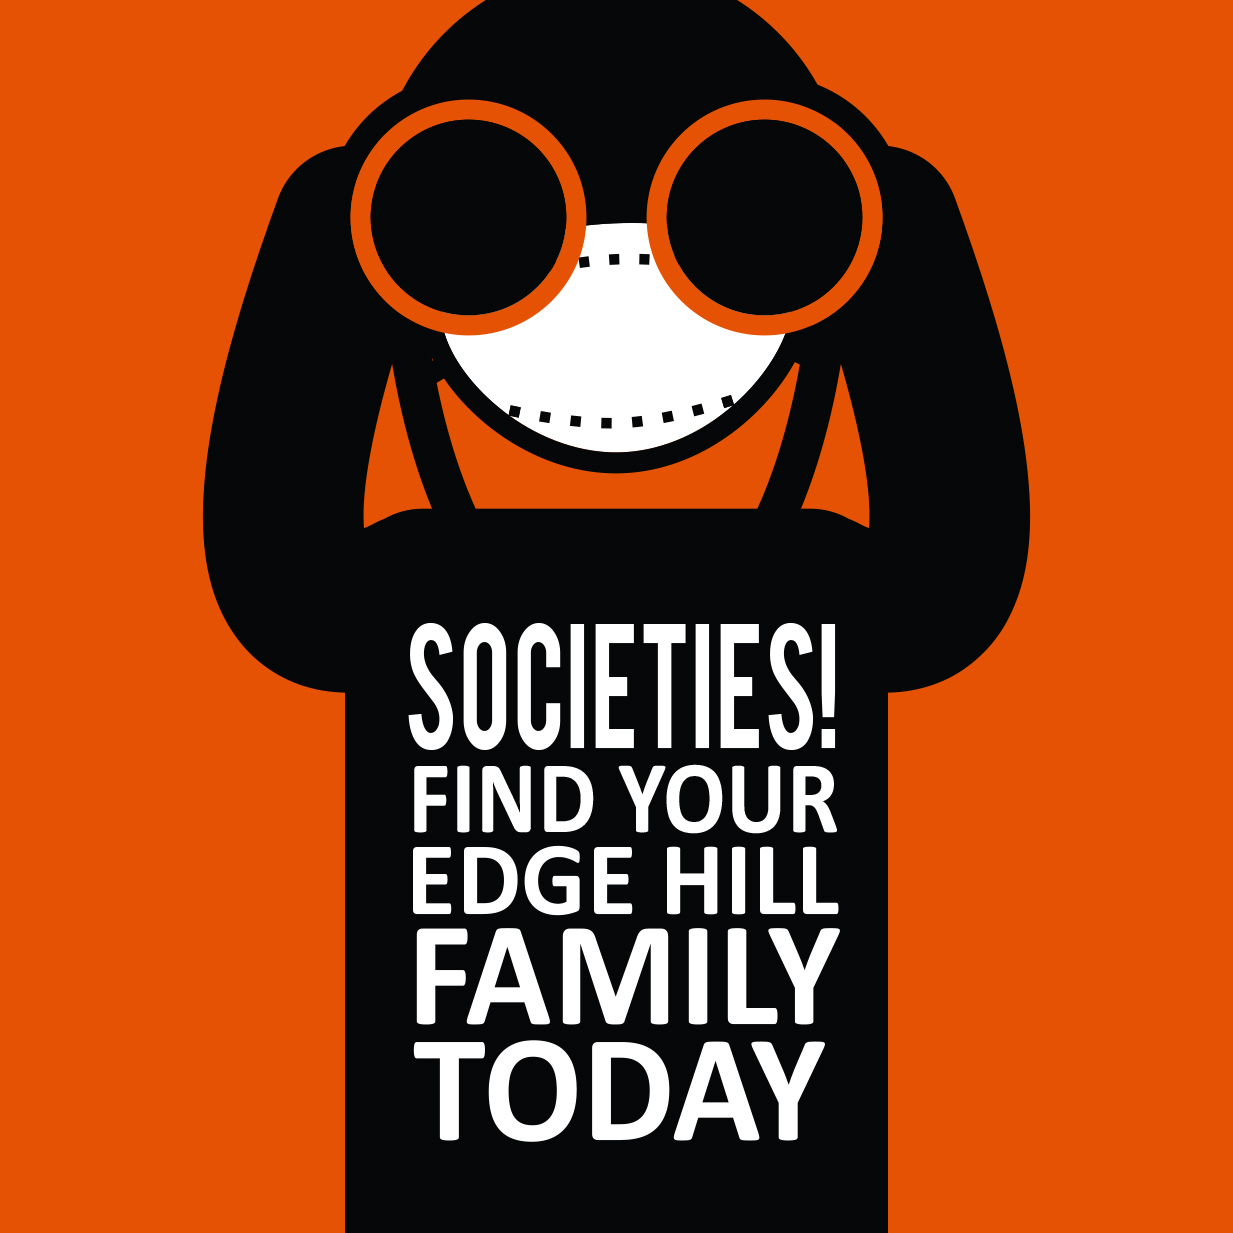 Web Button: Societies! Find your Edge Hill family